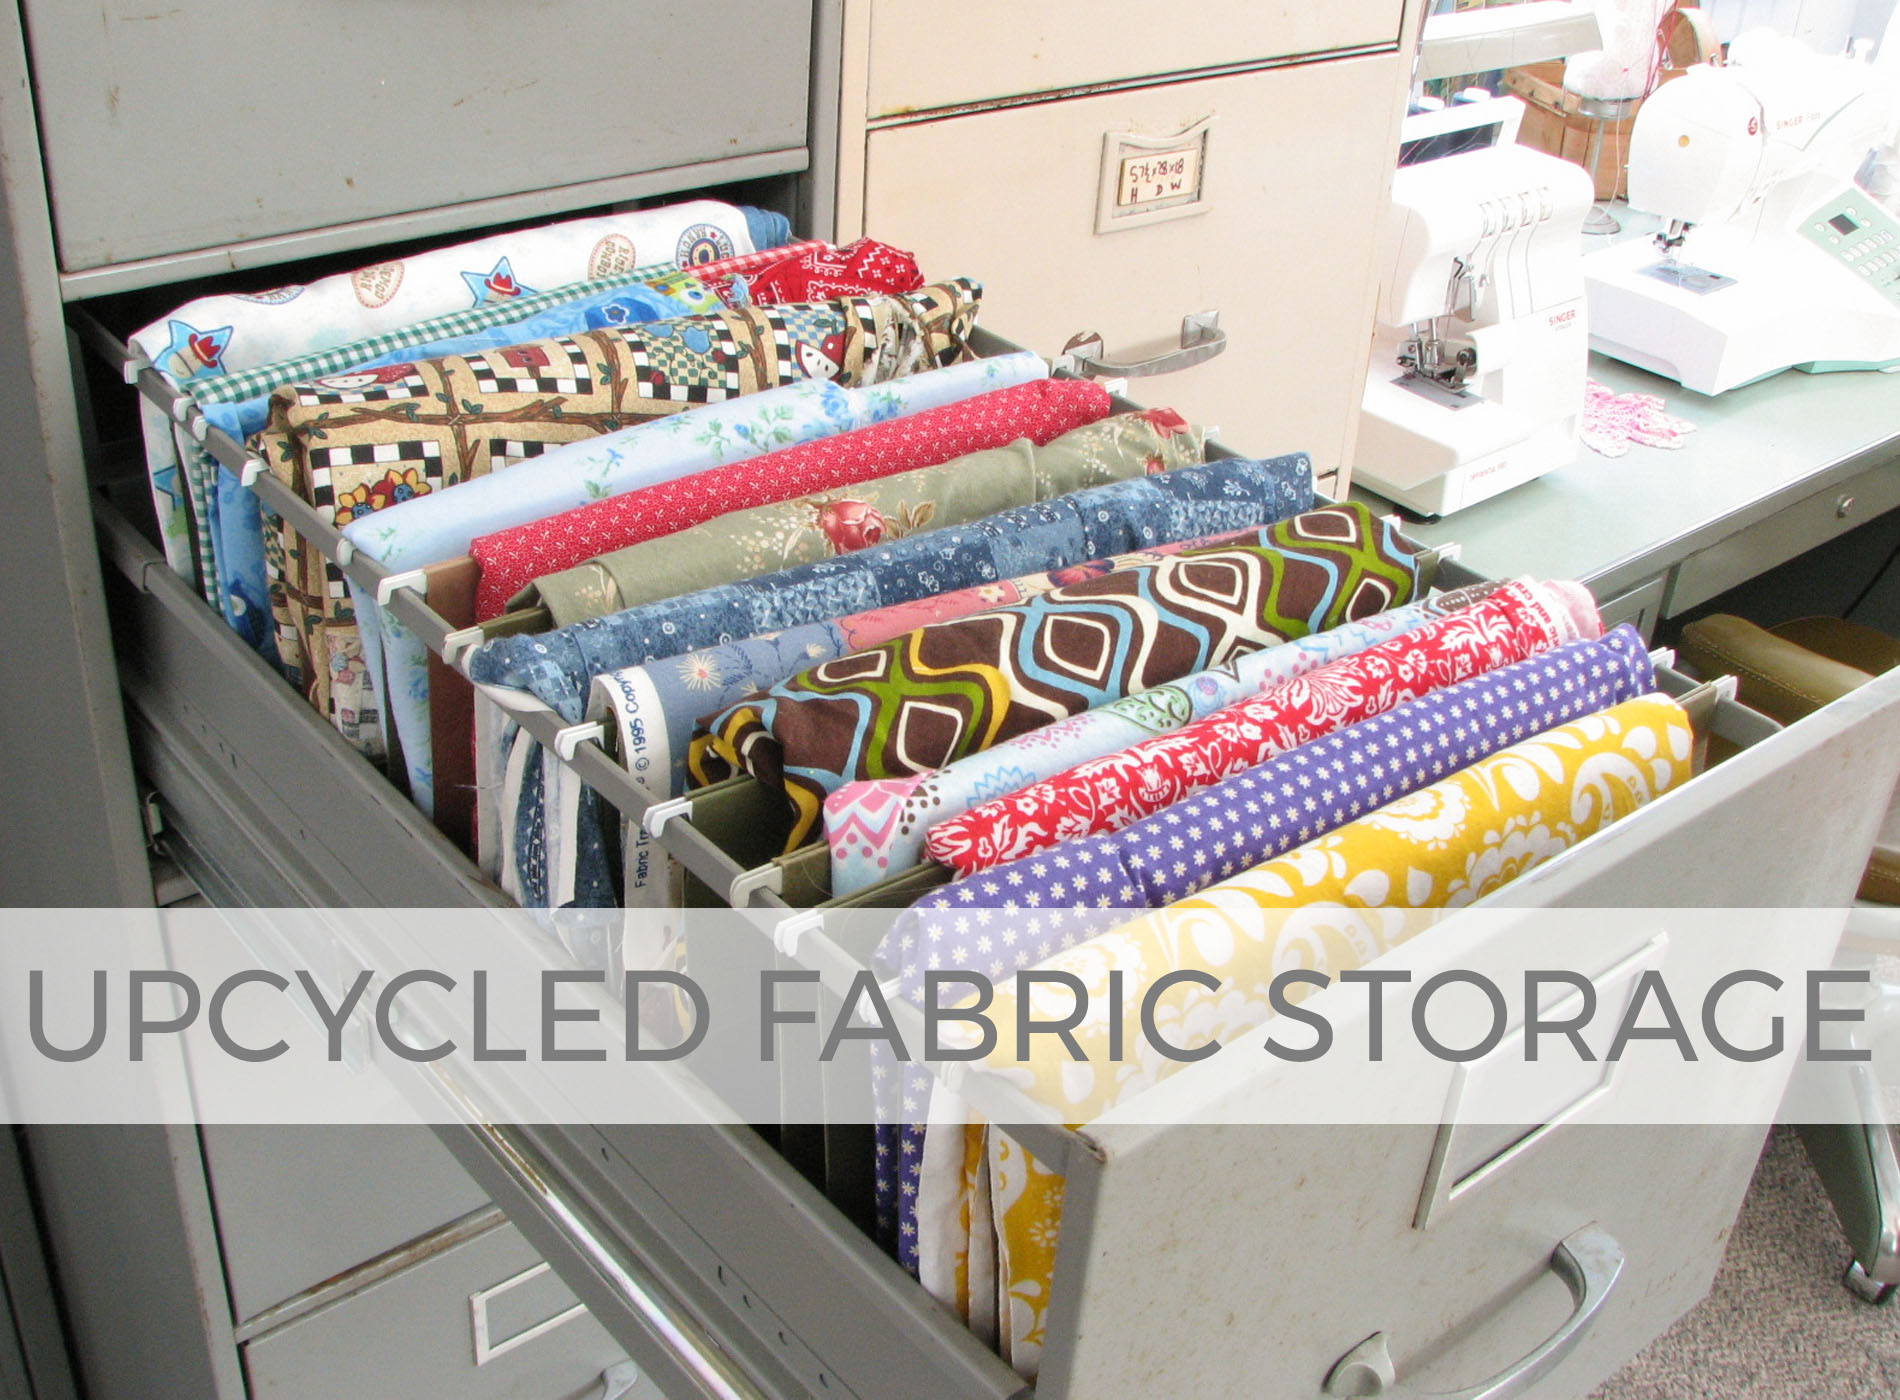 Store your fabric in your upcycled filing cabinets for ease of use | Prodigal Pieces | prodigalpieces.com